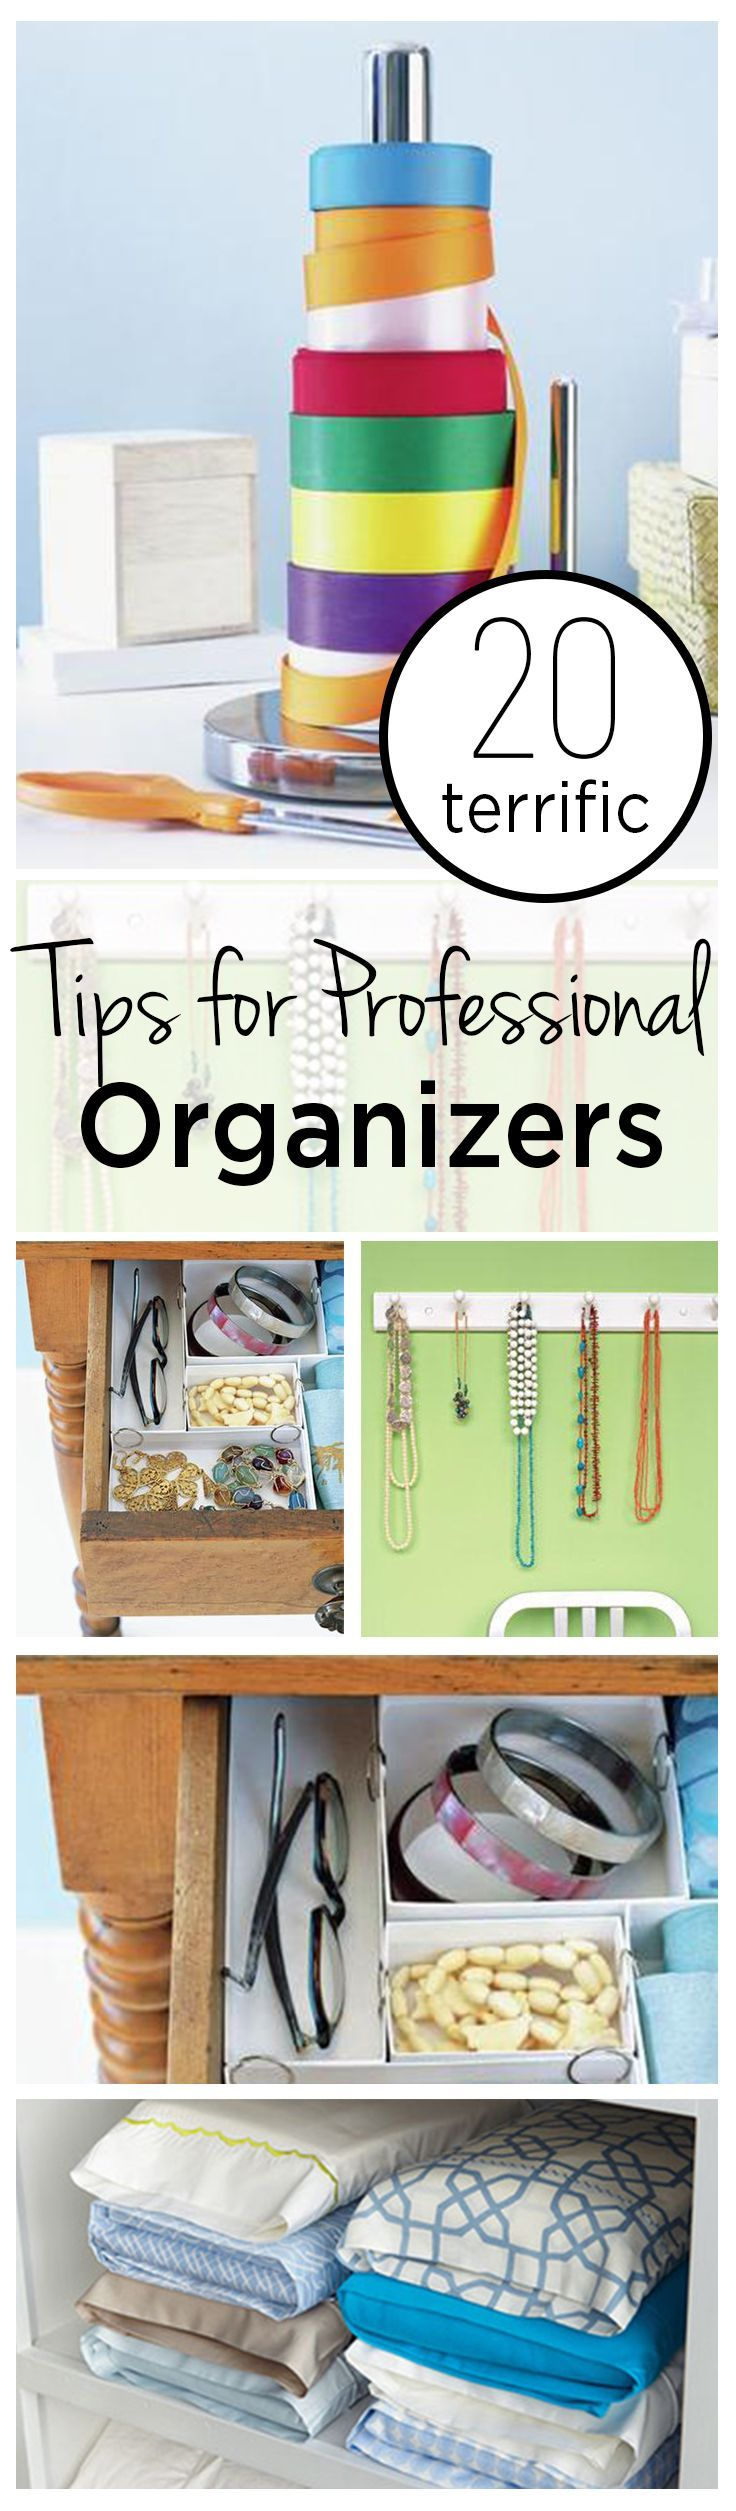 16 best ORGANIZATION | Office images on Pinterest | At home ...